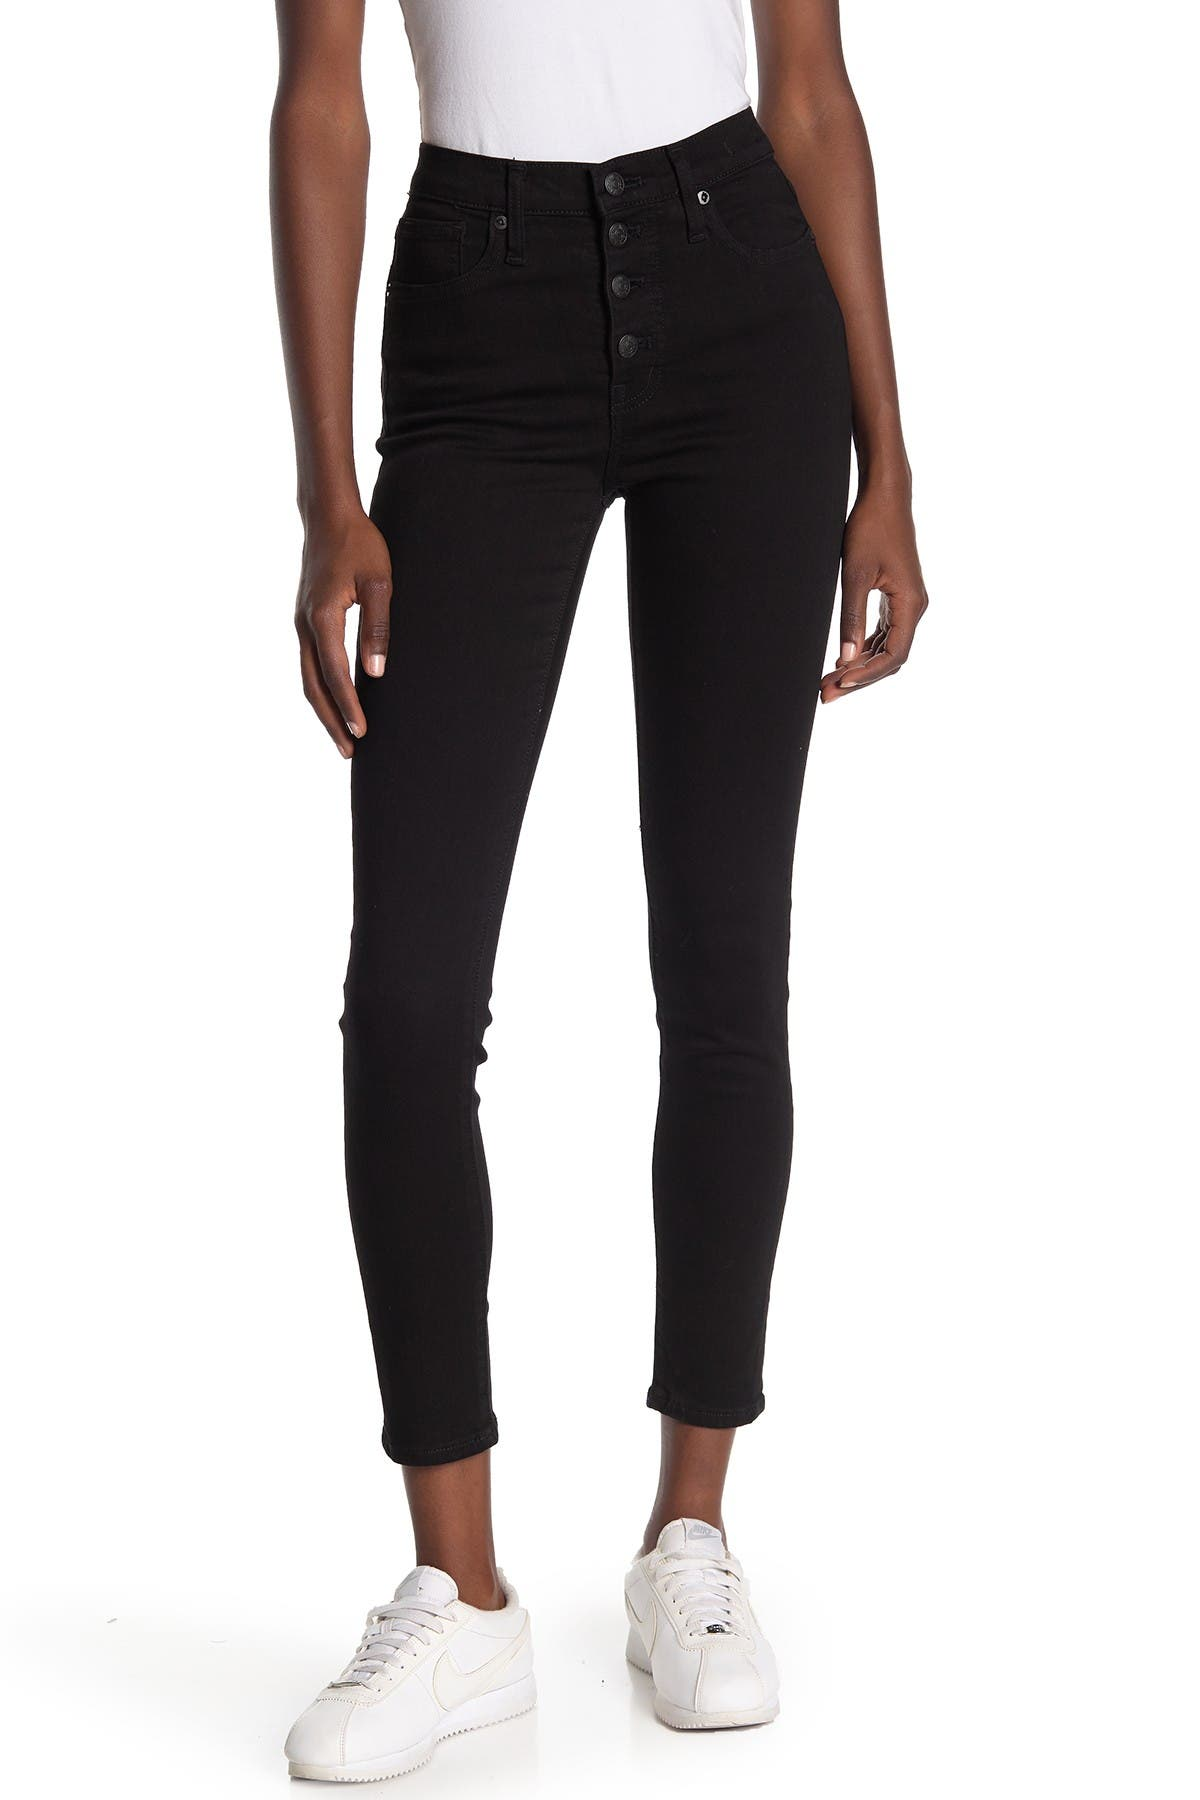 Image of Madewell Button Fly High Rise Skinny Jeans